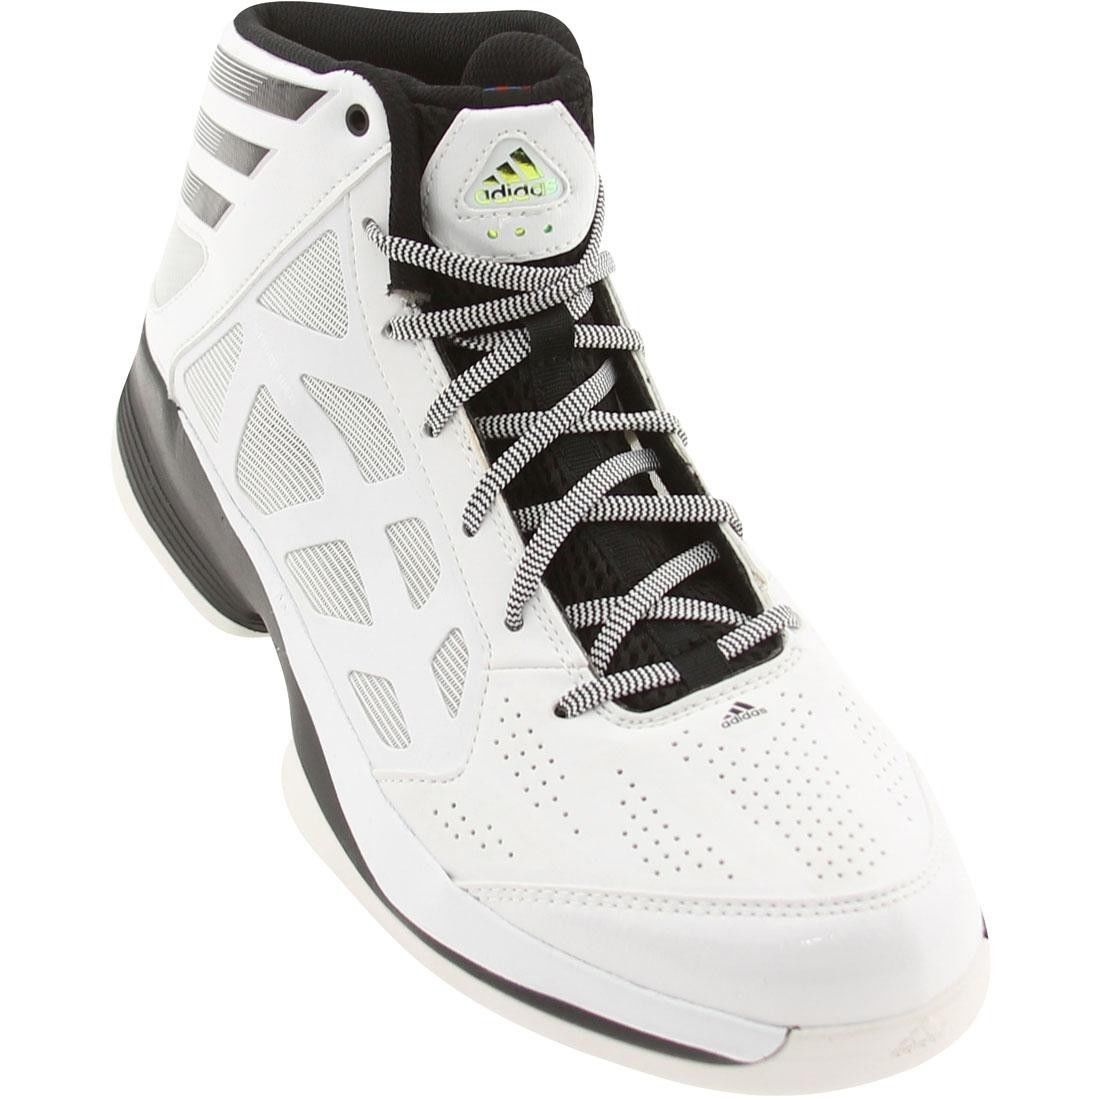 quality design 29b52 a6834 Adidas Crazy Shadow 2